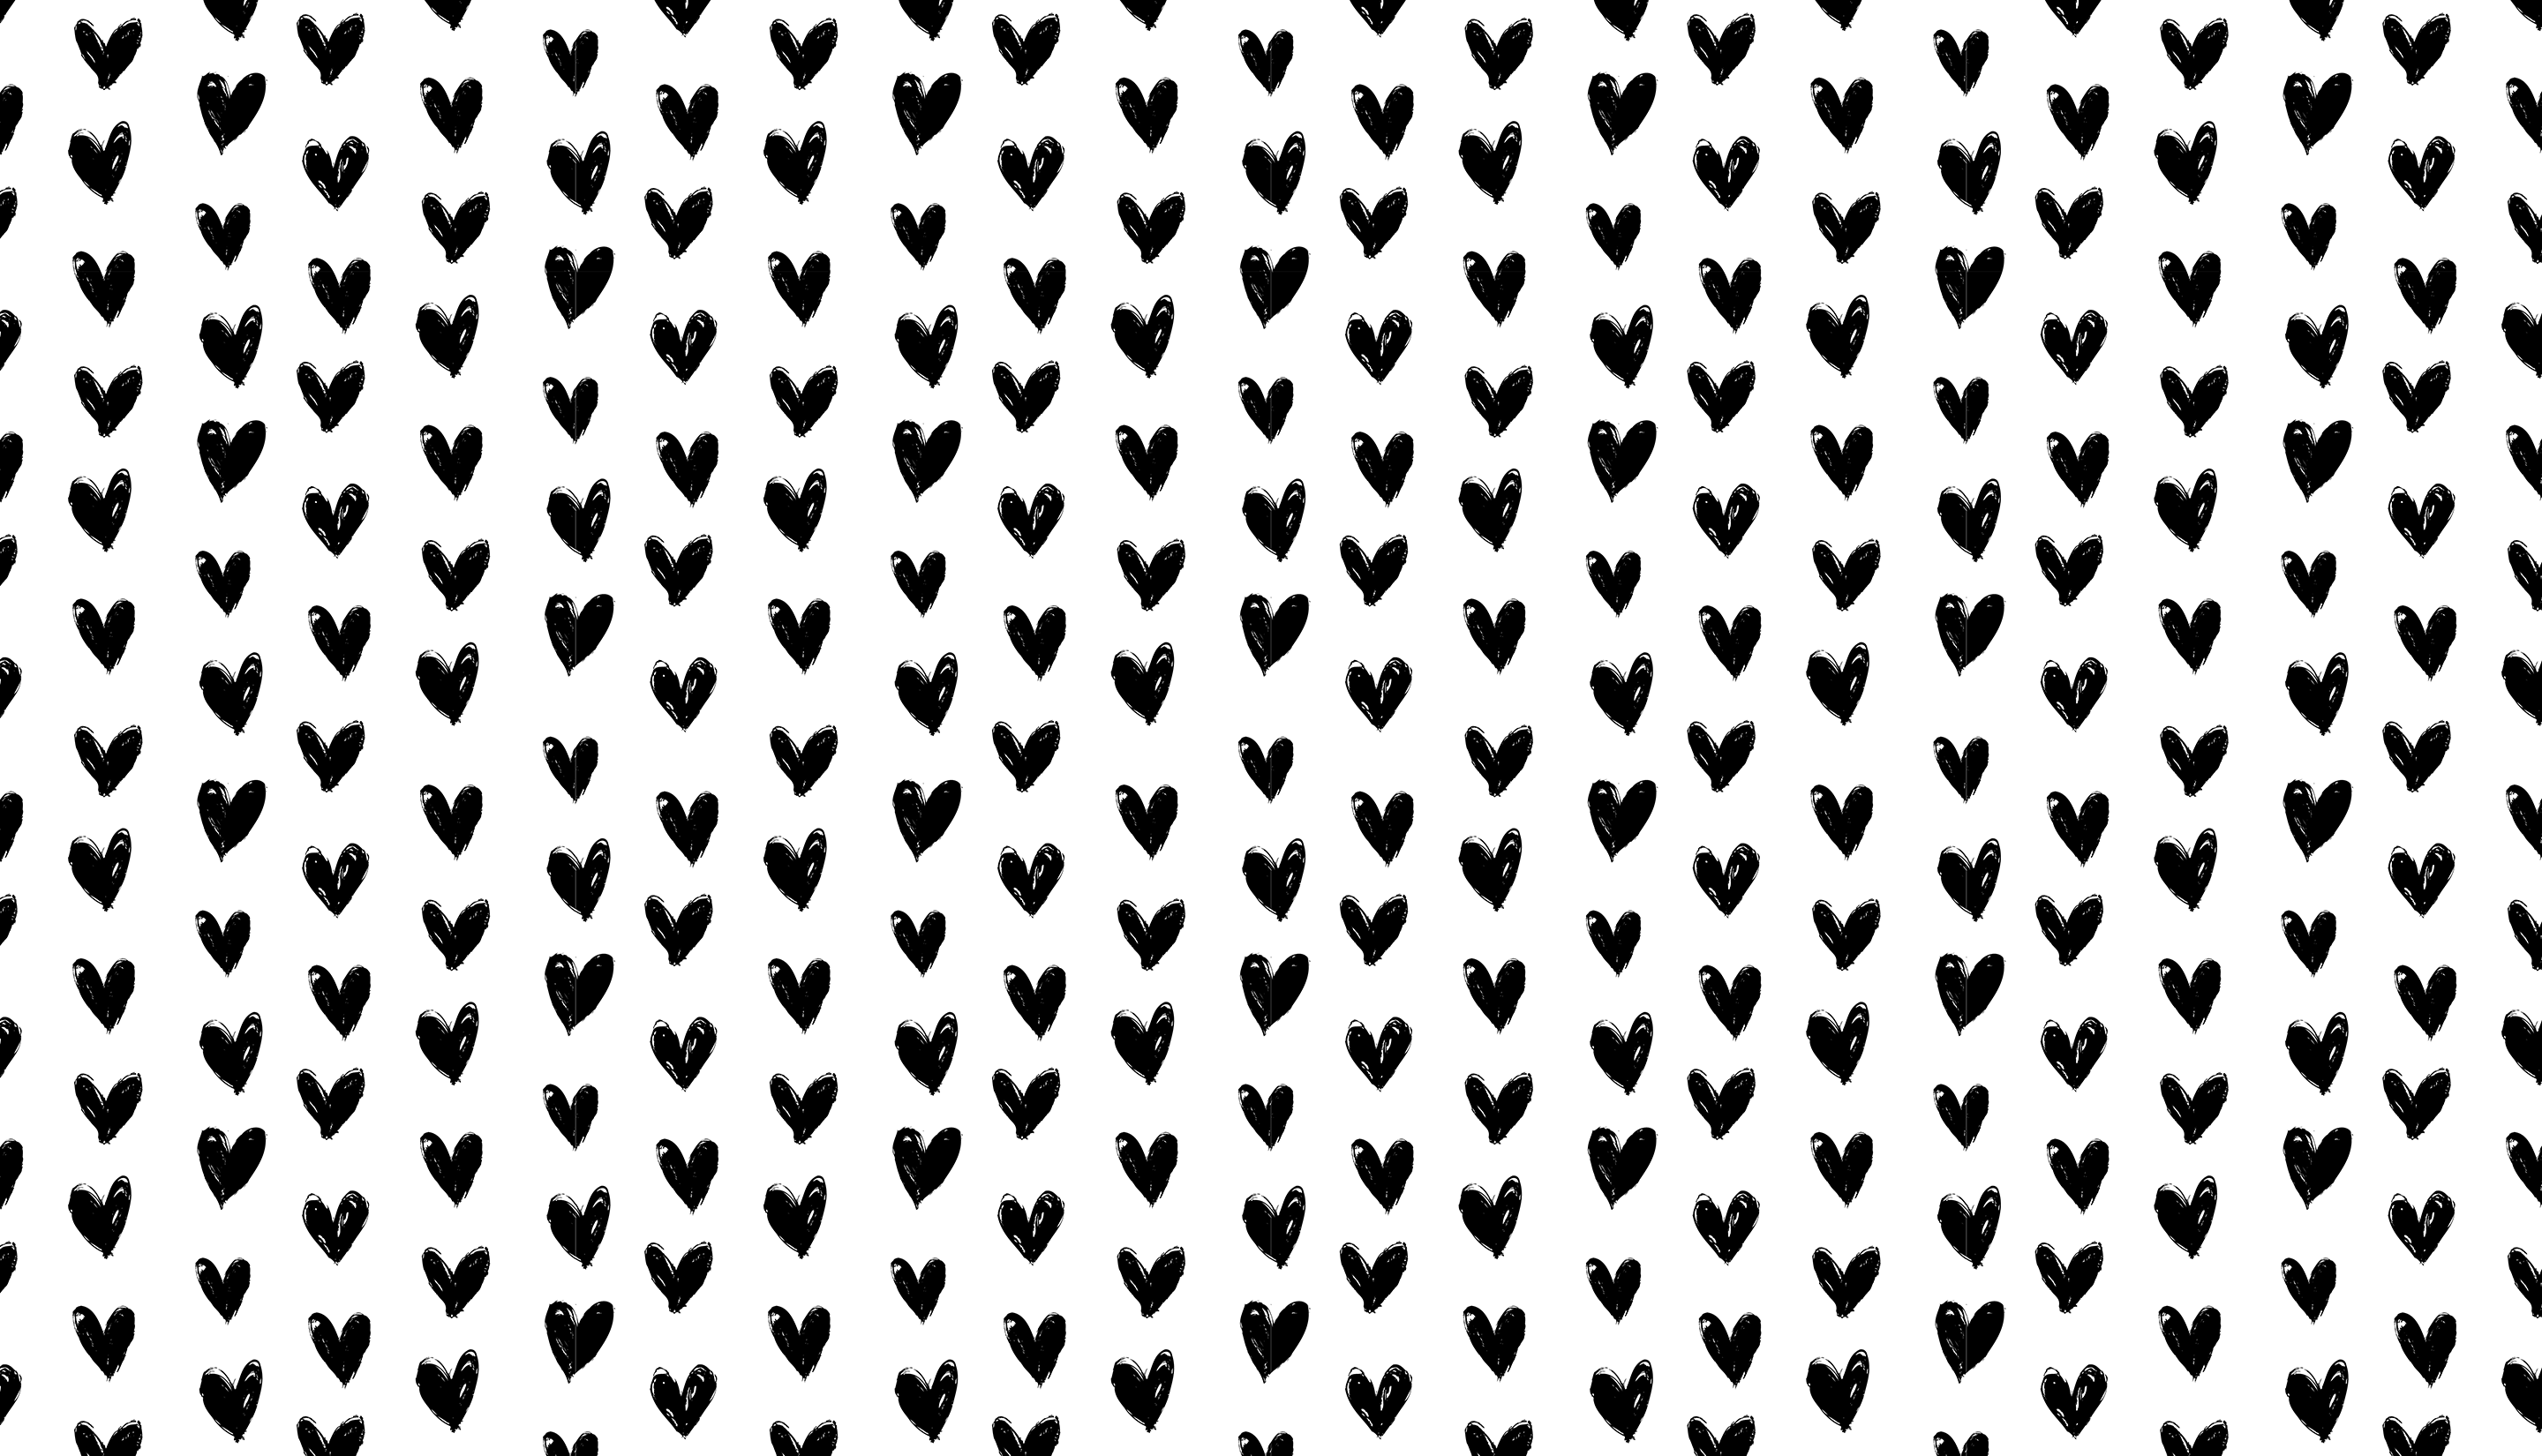 Black And White Heart Background Png Free Black And White Heart Background Png Transparent Images 53172 Pngio